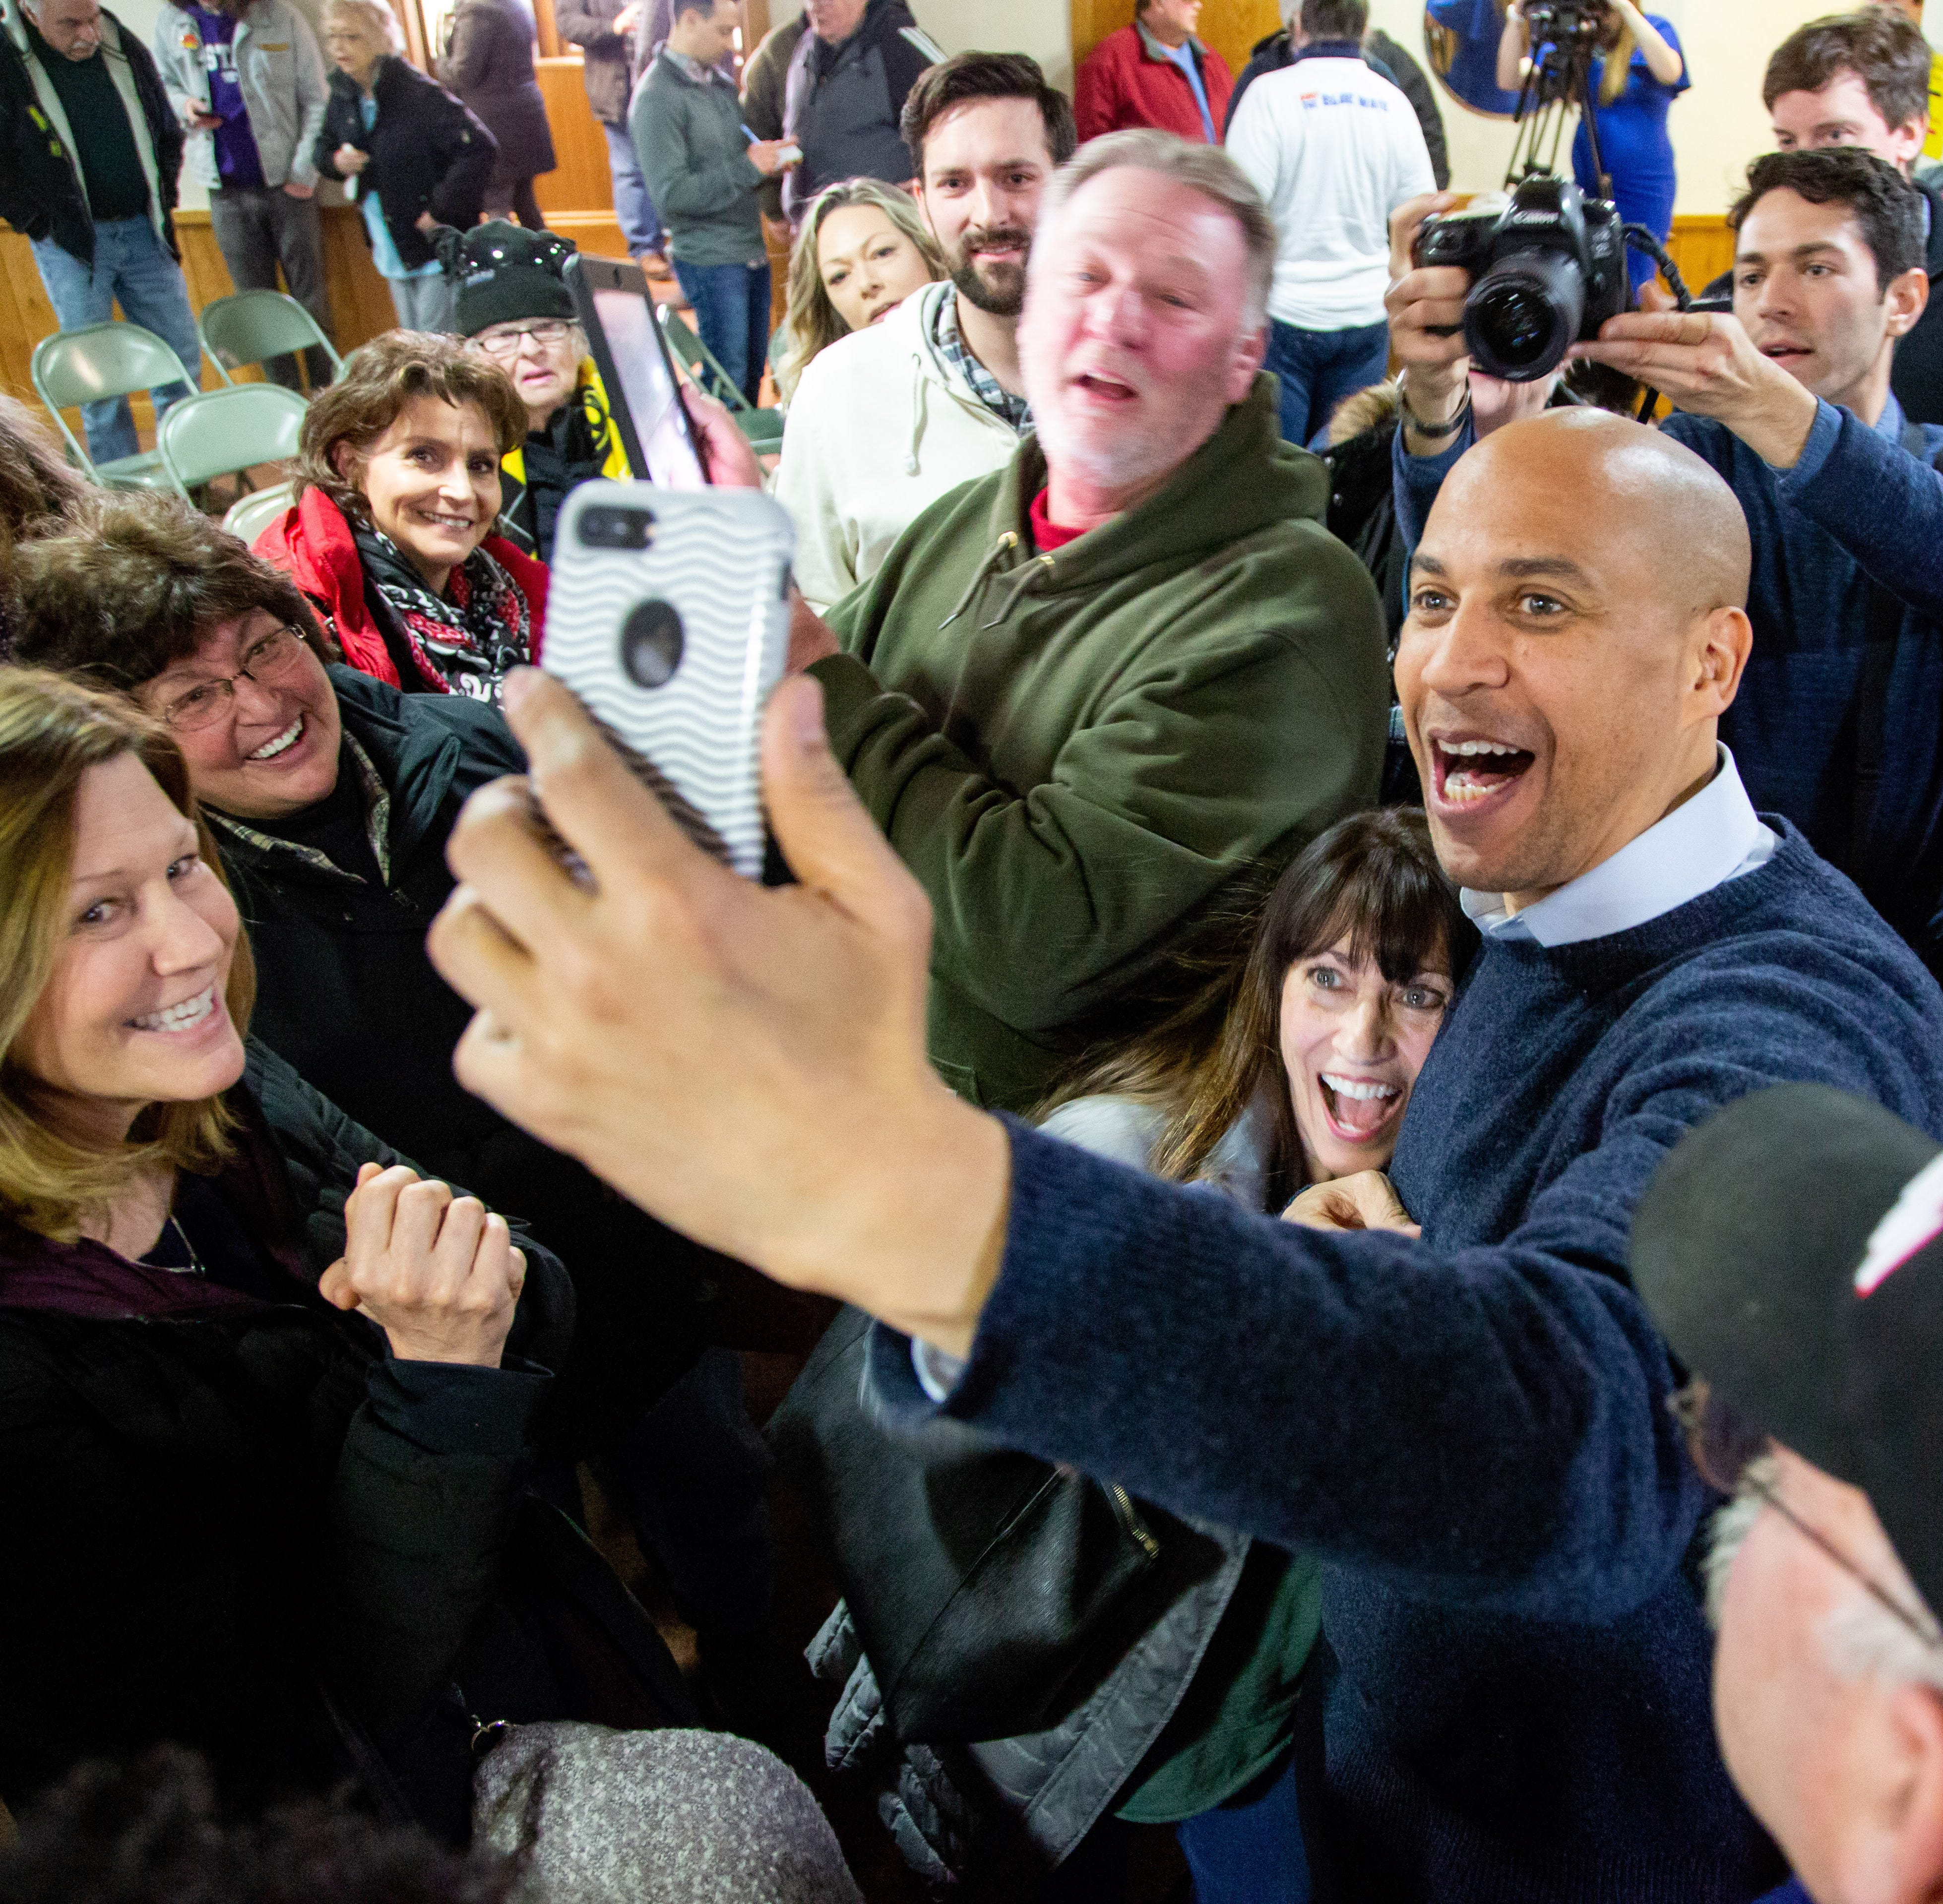 Iowa Politics Newsletter: Weekend campaign trail in Iowa brought Booker, Warren and Buttigieg